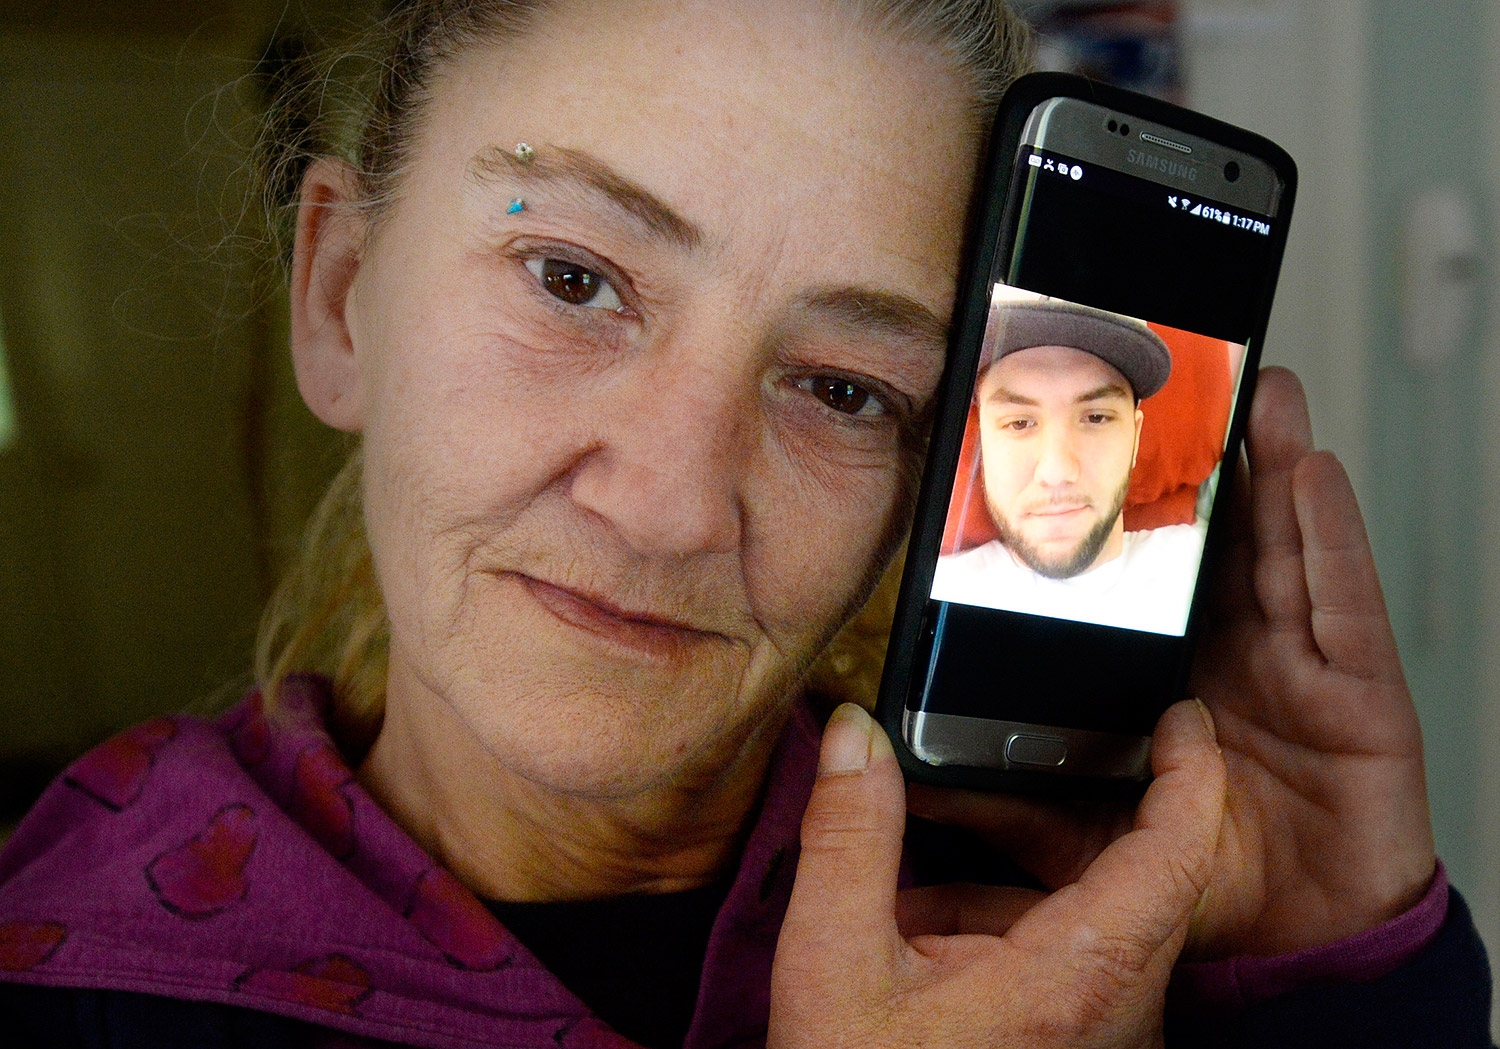 """Cheryl Methot, the mother of Jonathon Methot, who was shot early Monday morning in Biddeford, holds a phone with a photo of her son Friday. She said her son had struggled with prescription opiate addiction, but was working to get his life back on track, and """"was doing really good."""" Shawn Patrick Ouellette/Staff Photographer"""